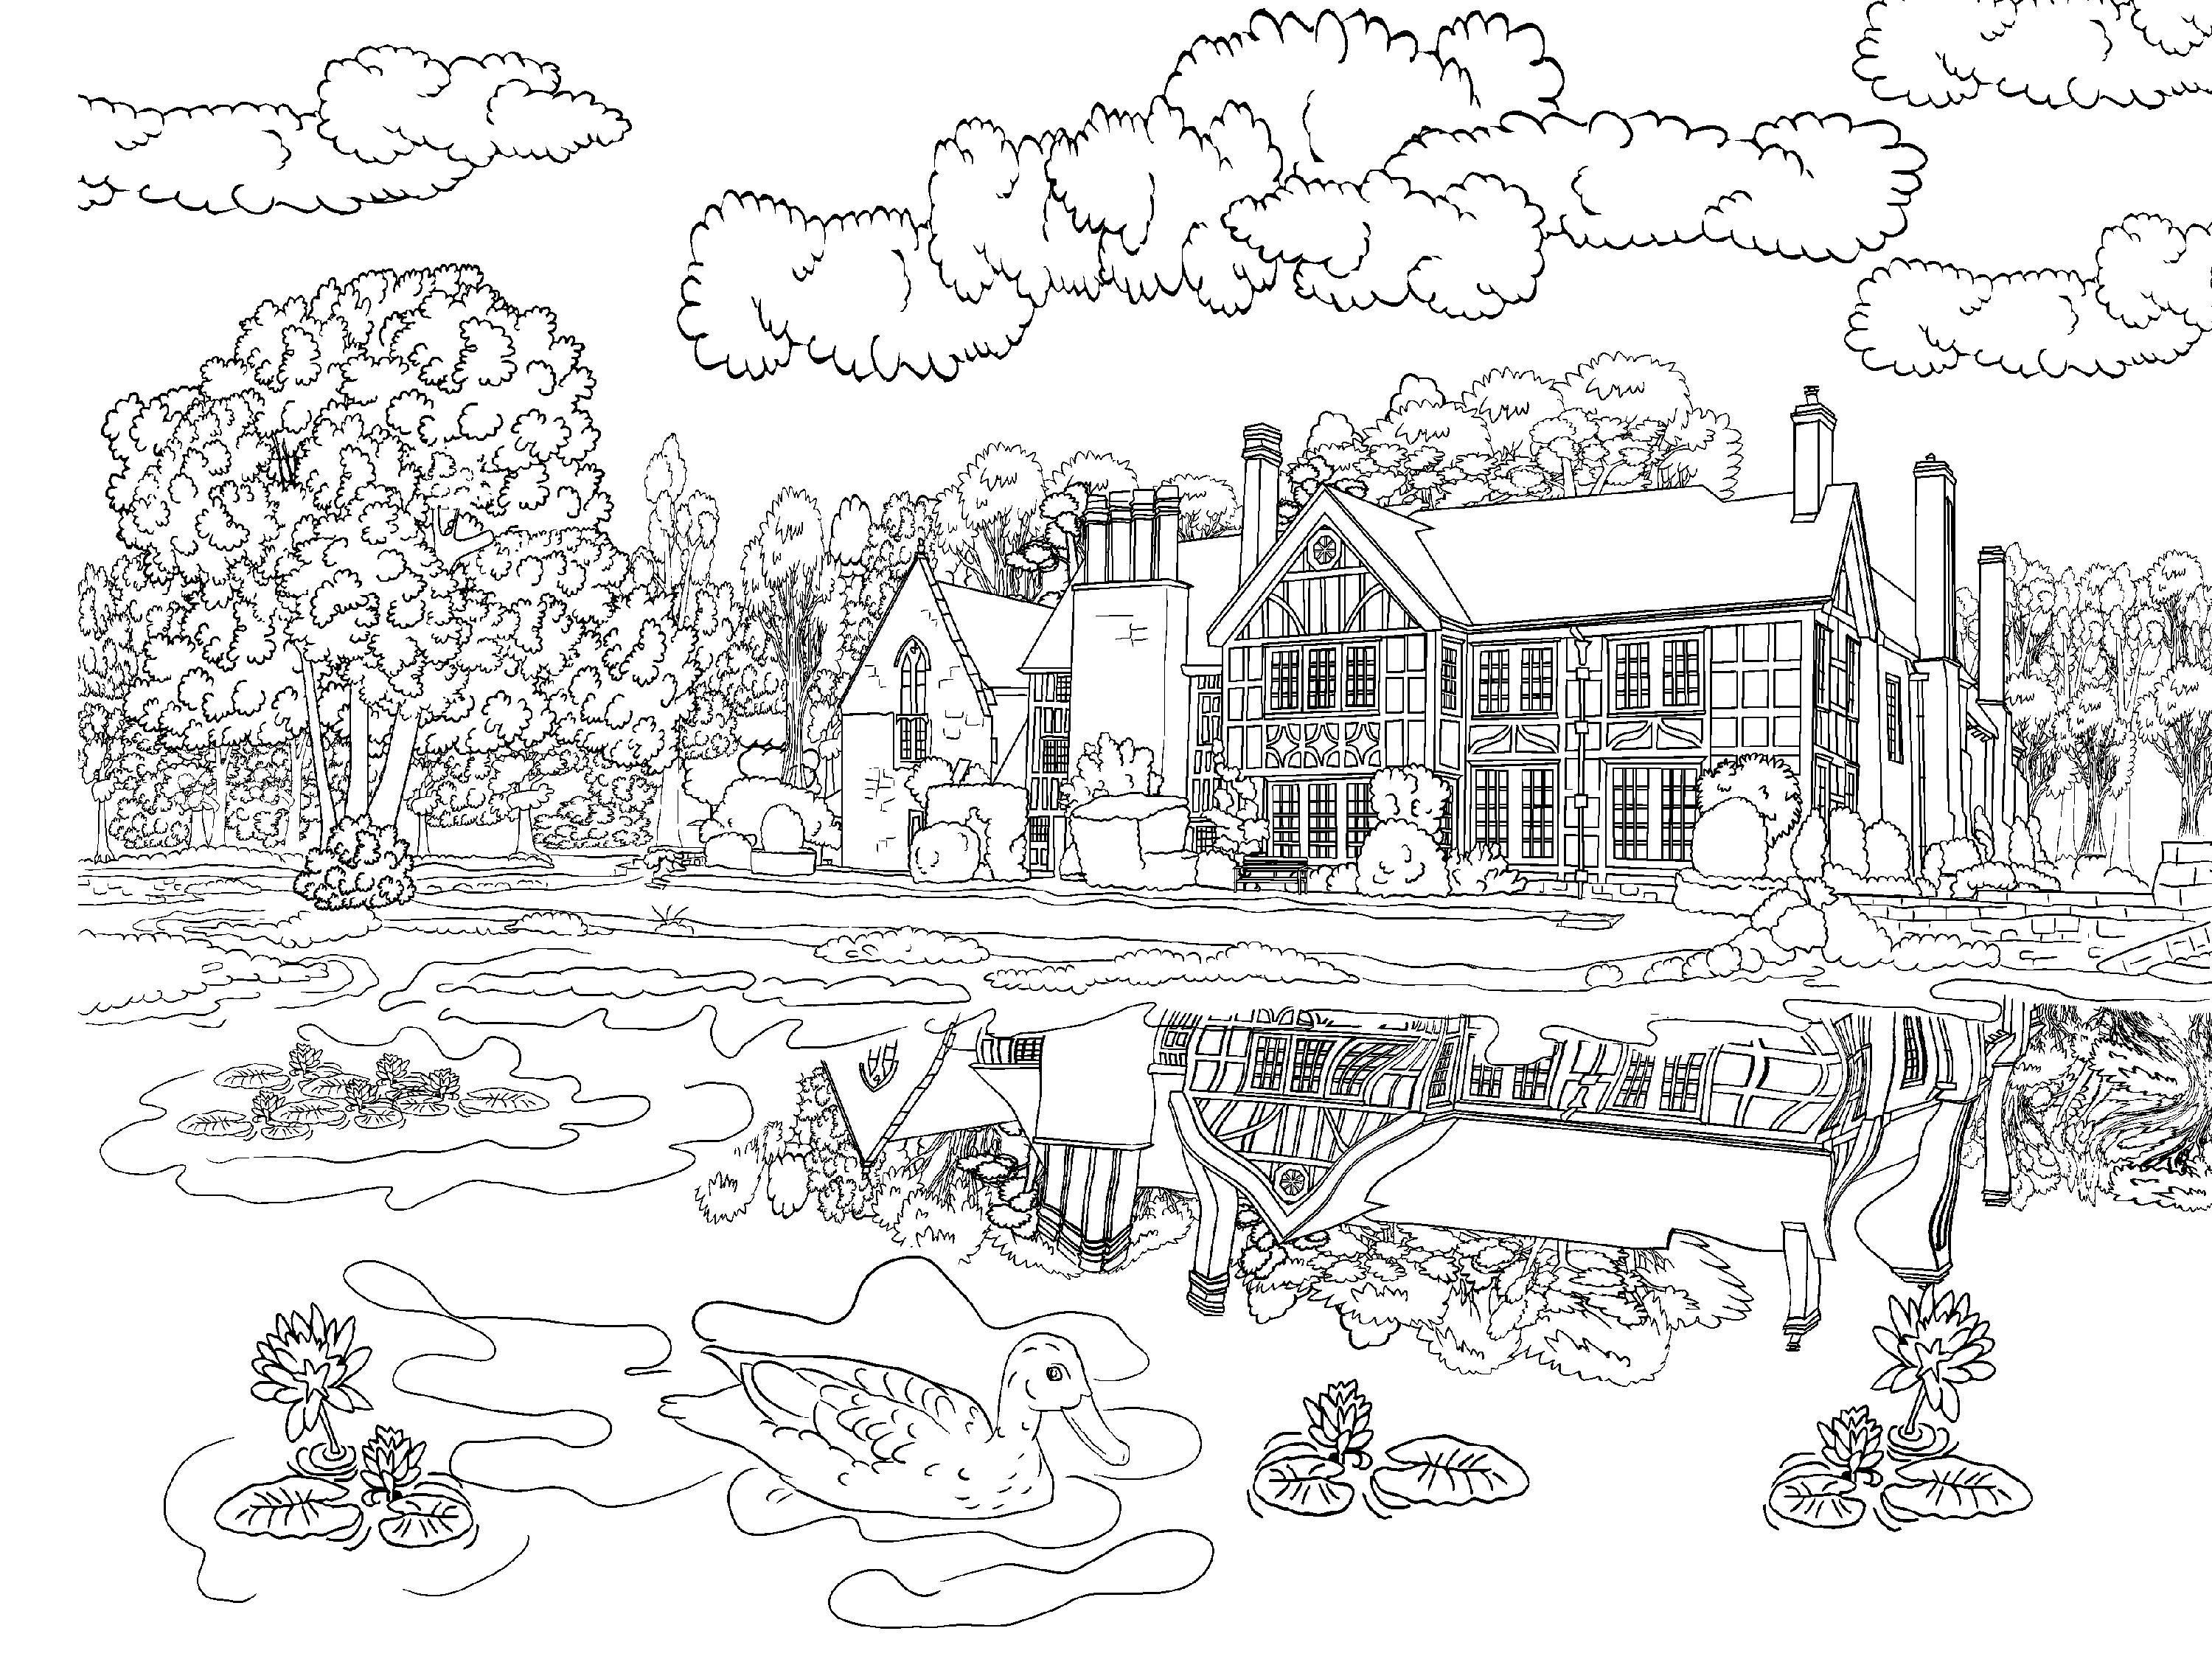 Beautiful Scenery Colouring Pages | Coloring pages for all ...